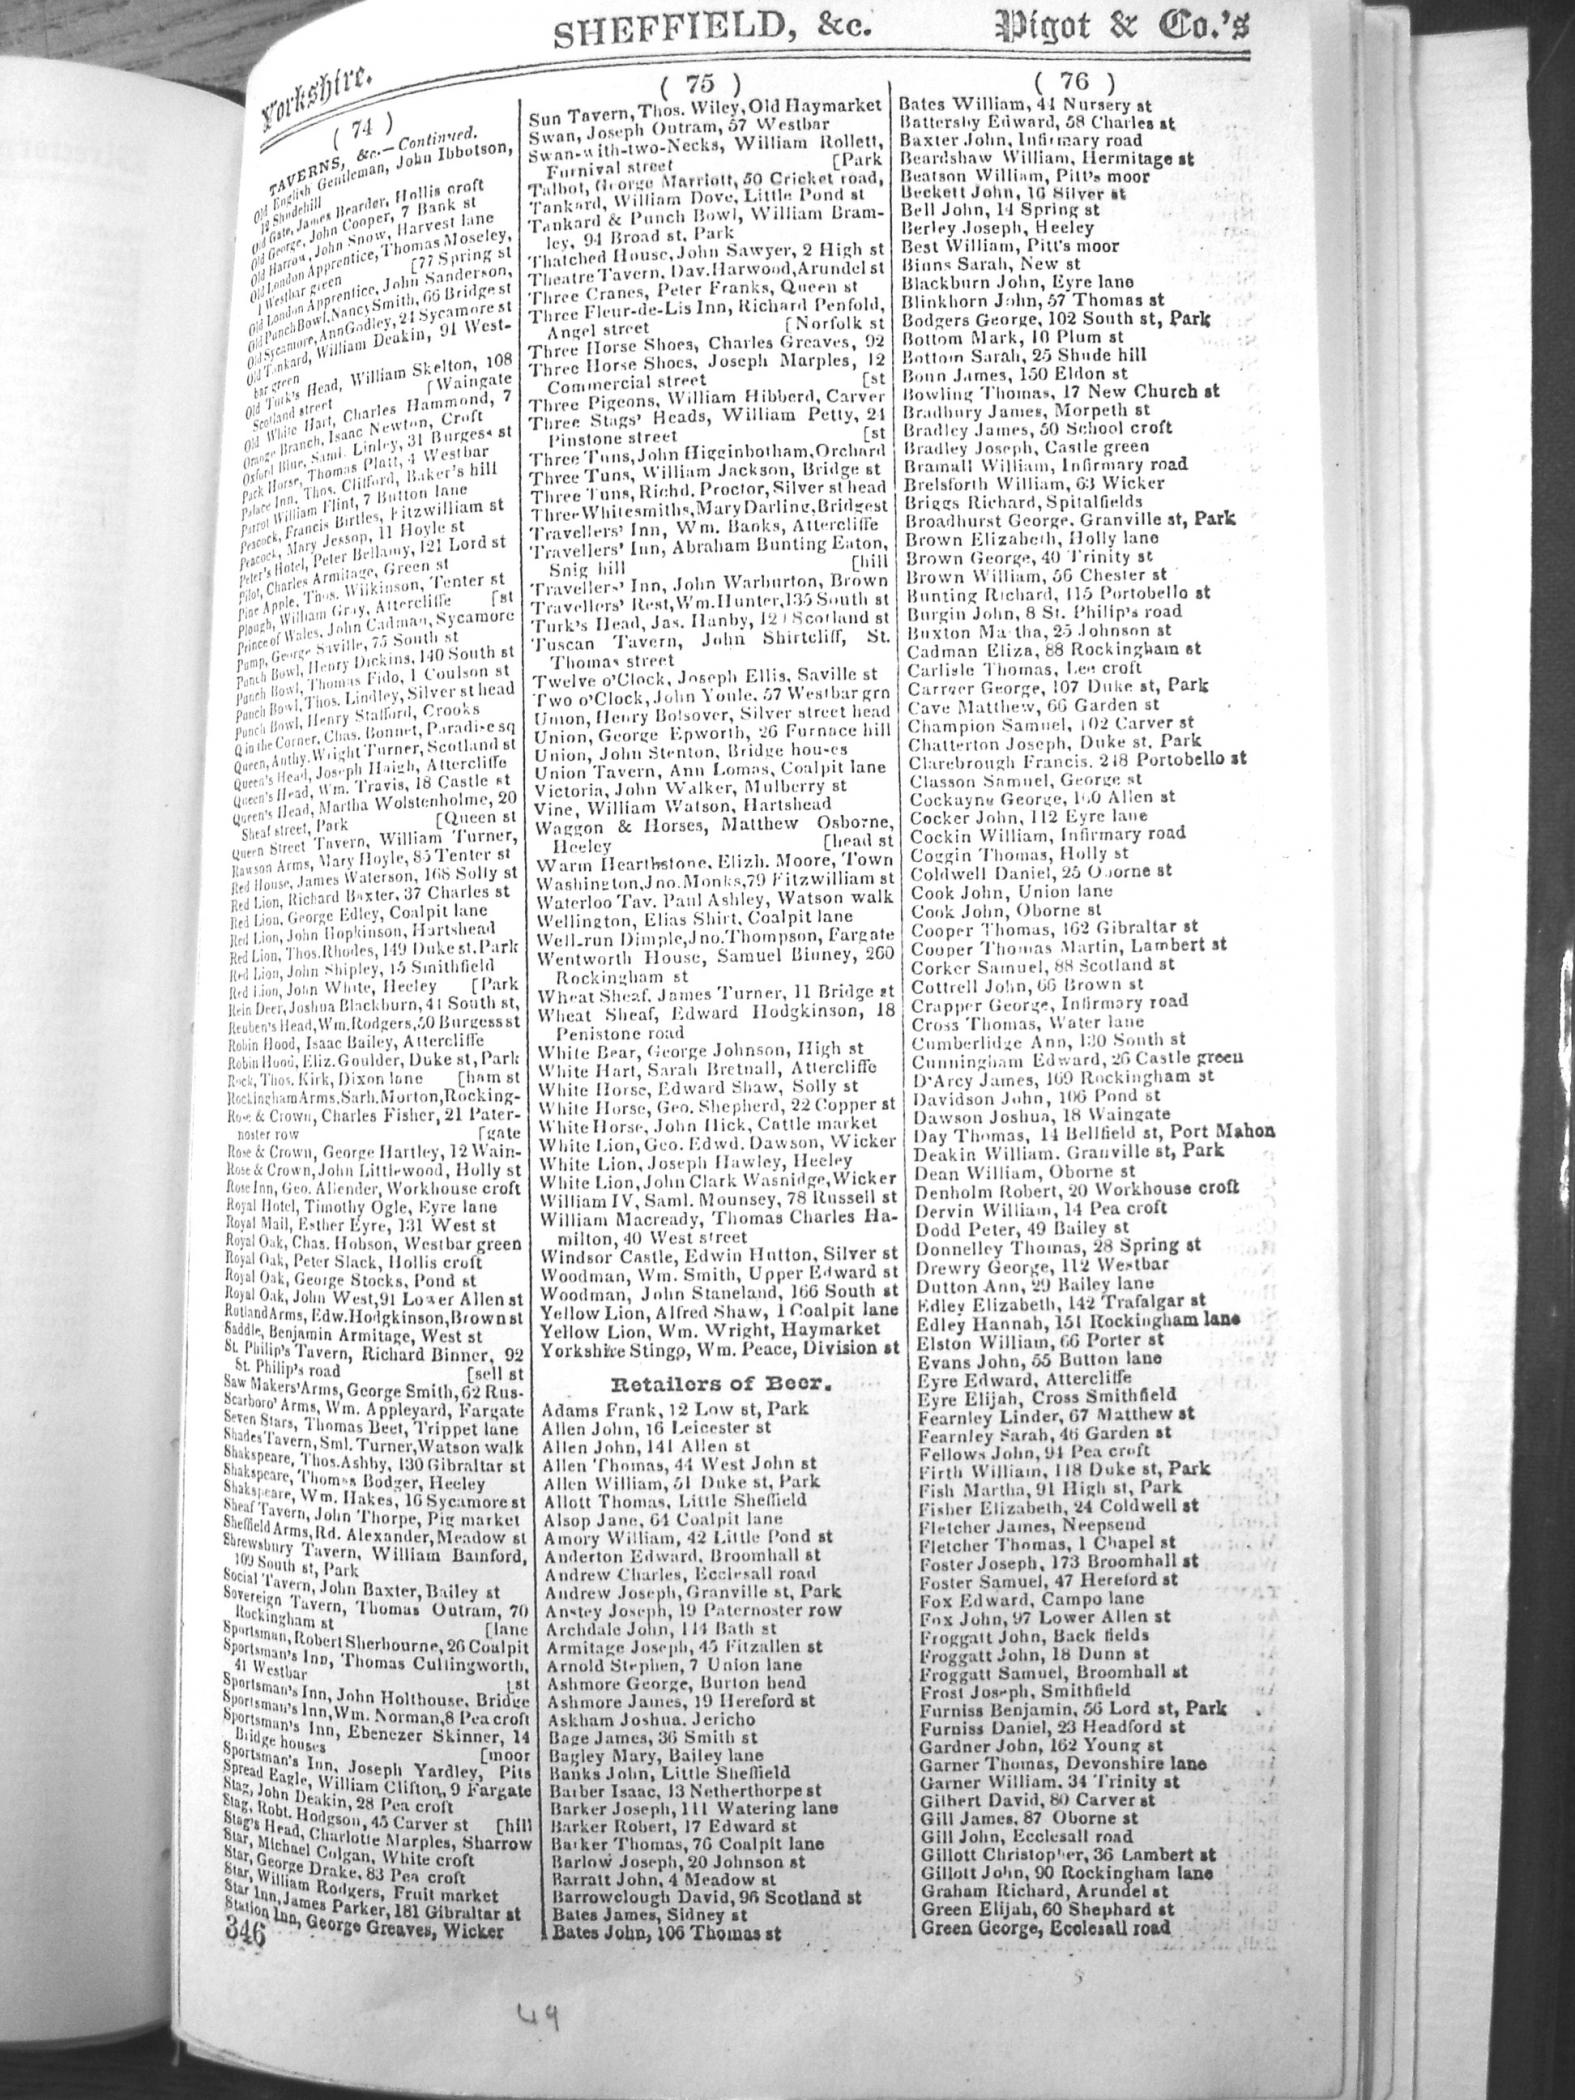 1841beer retailers A-G.JPG